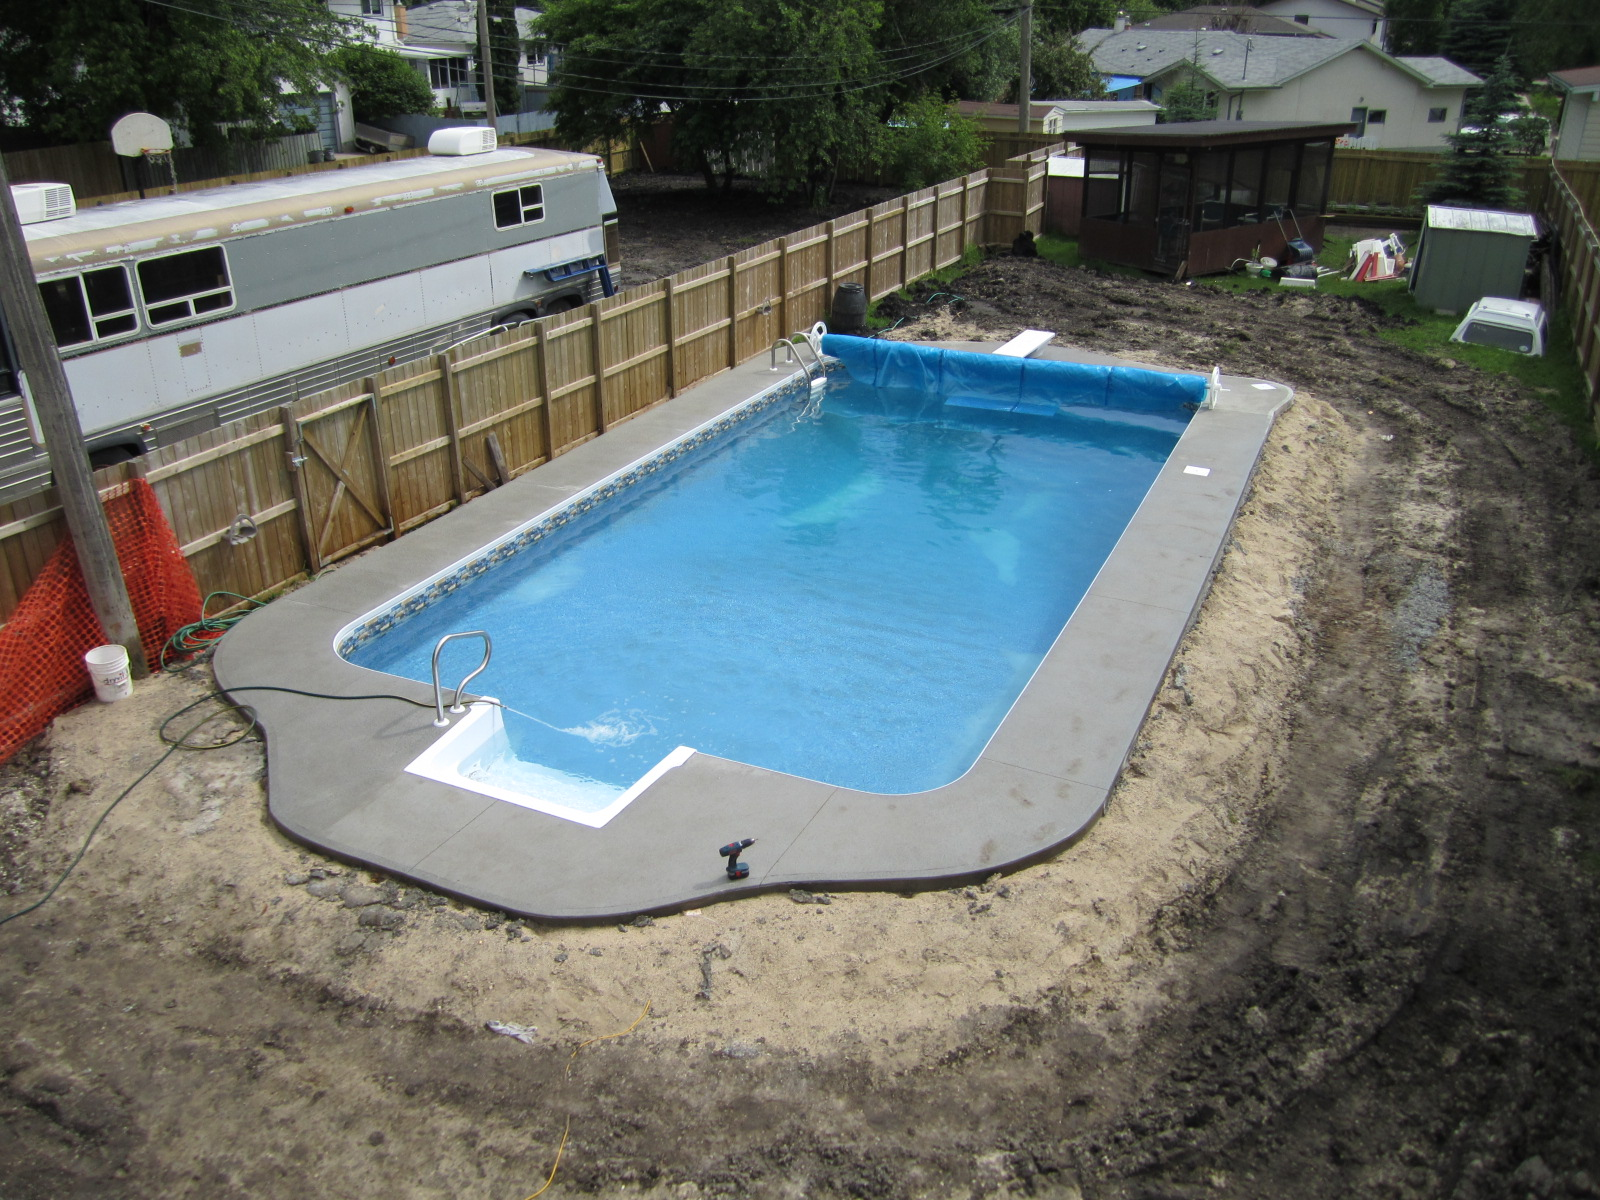 Pictures of 16x32 inground pool joy studio design for Pictures of inground pools